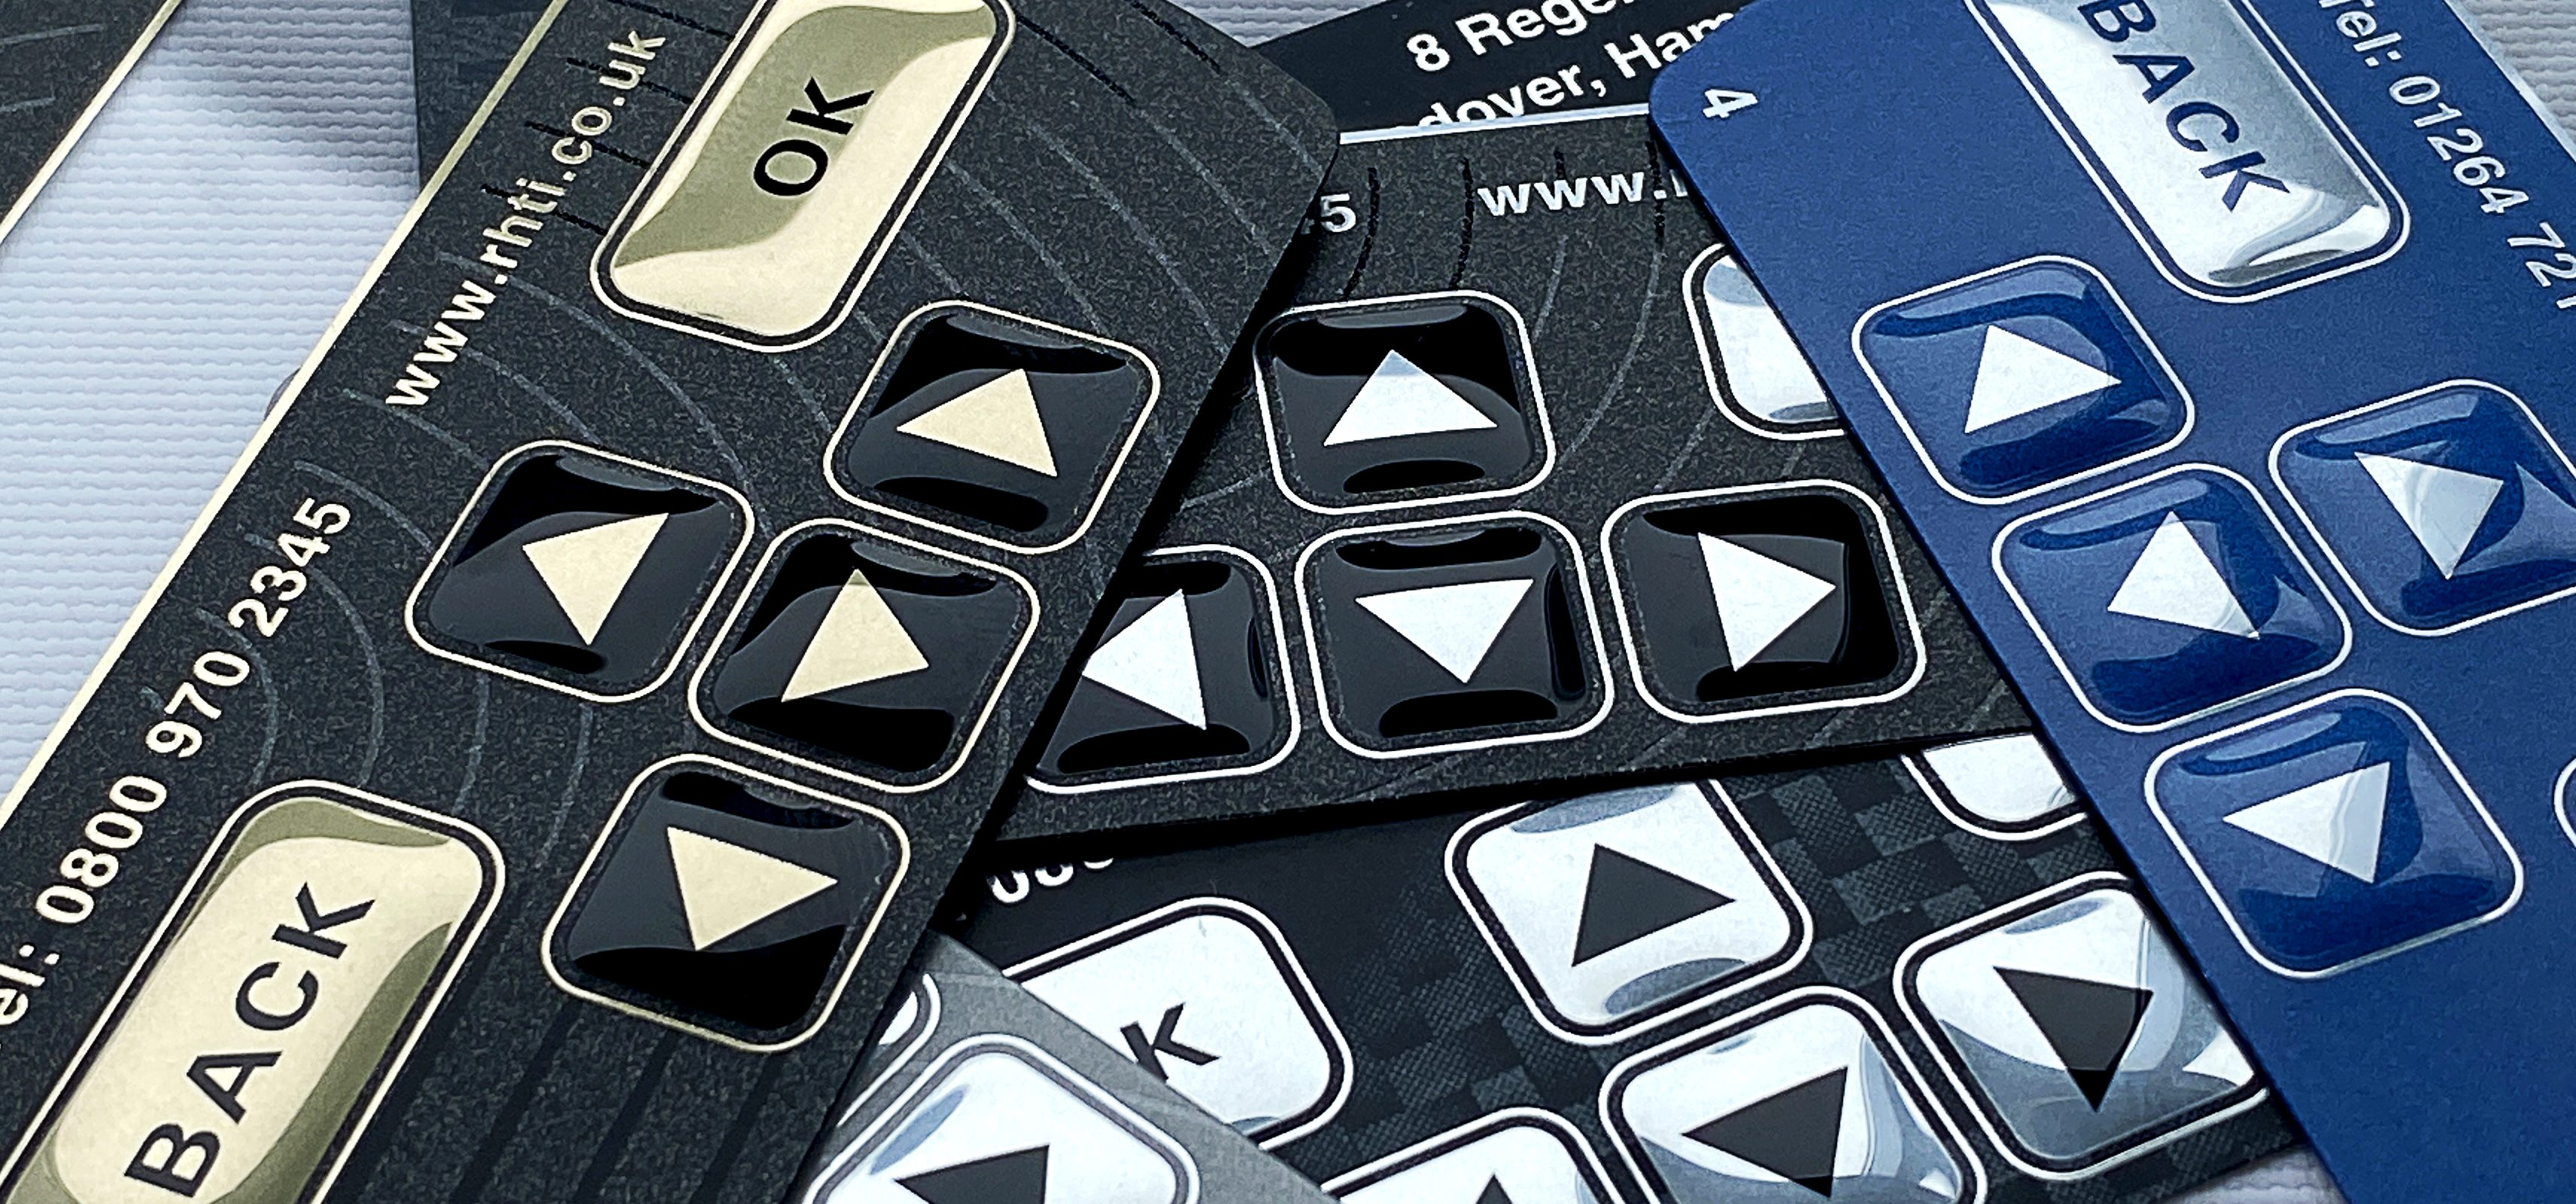 Graphic Overlay Product samples - Embossing and Tactile Finish